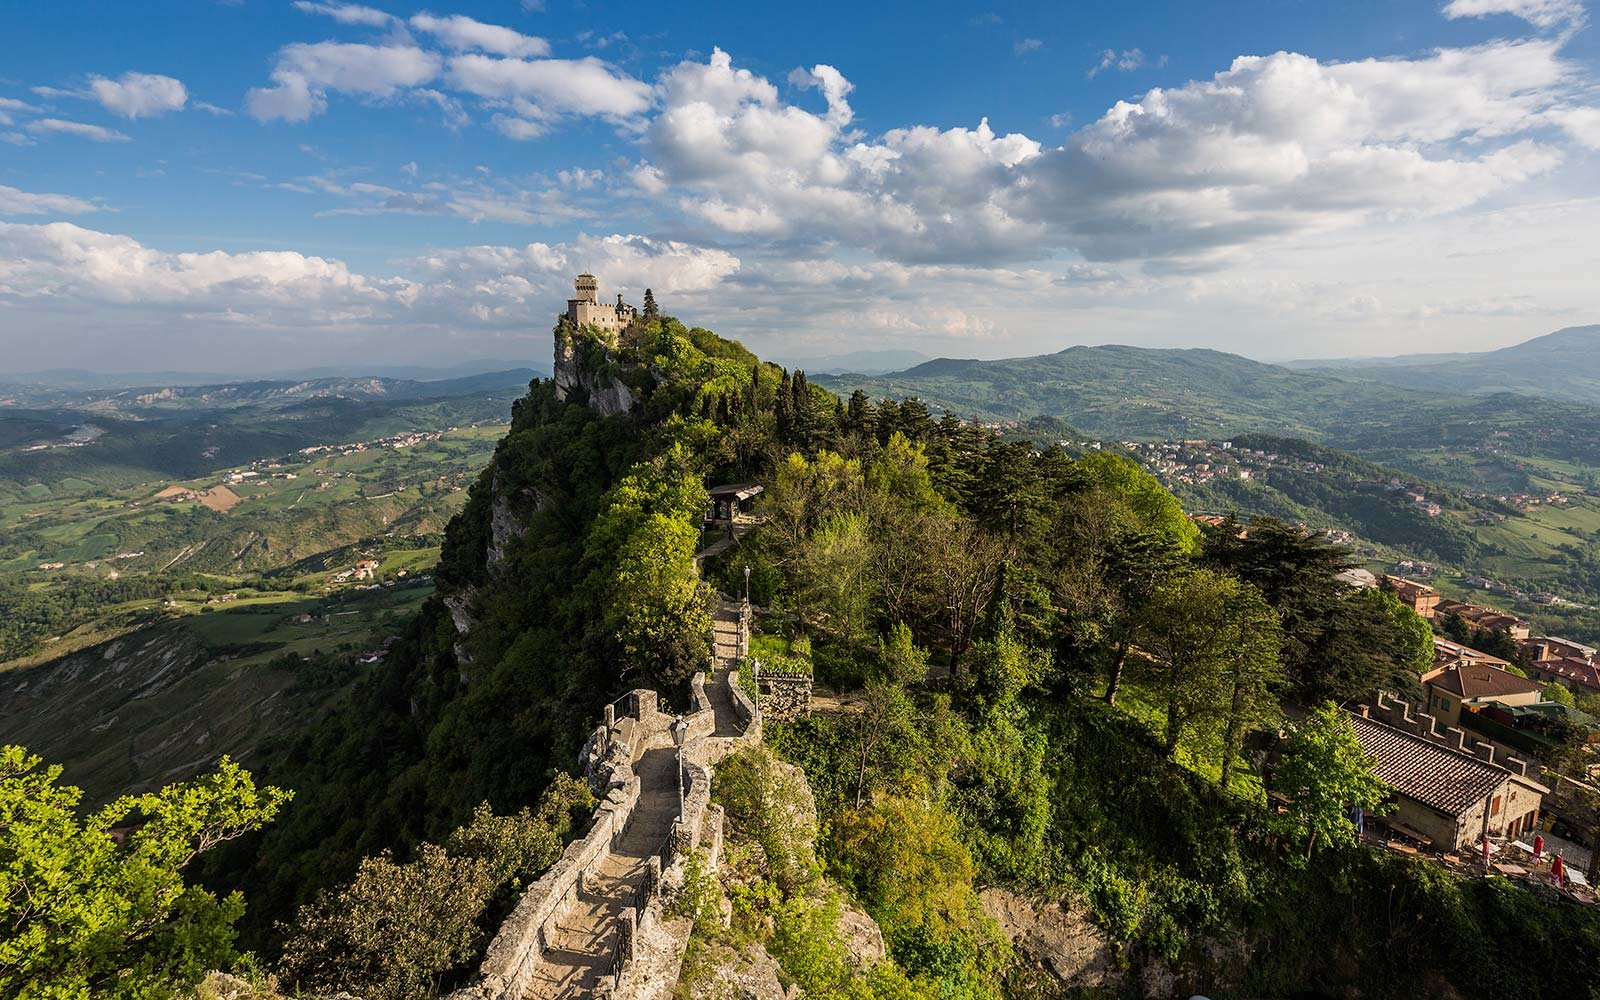 The second Torre (tower) called Cesta or Fratta on the Monte (mount) Titano San Marino